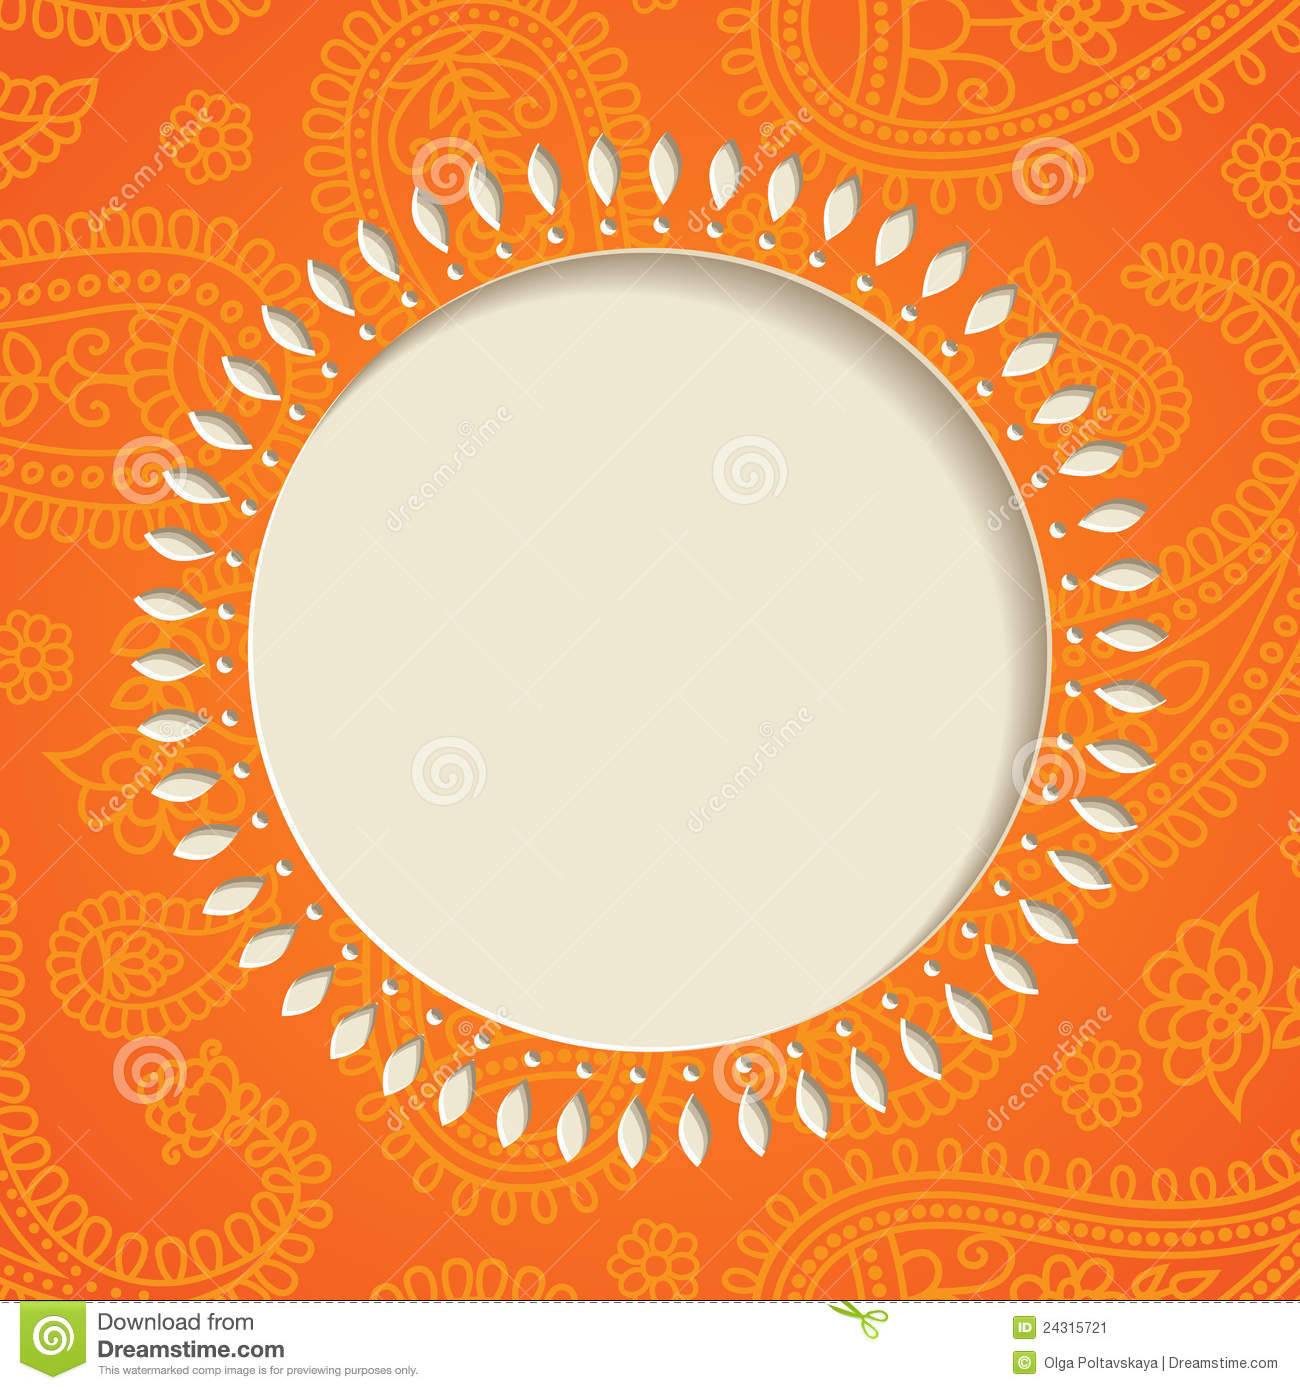 orange paisley frame stock vector illustration of illustration